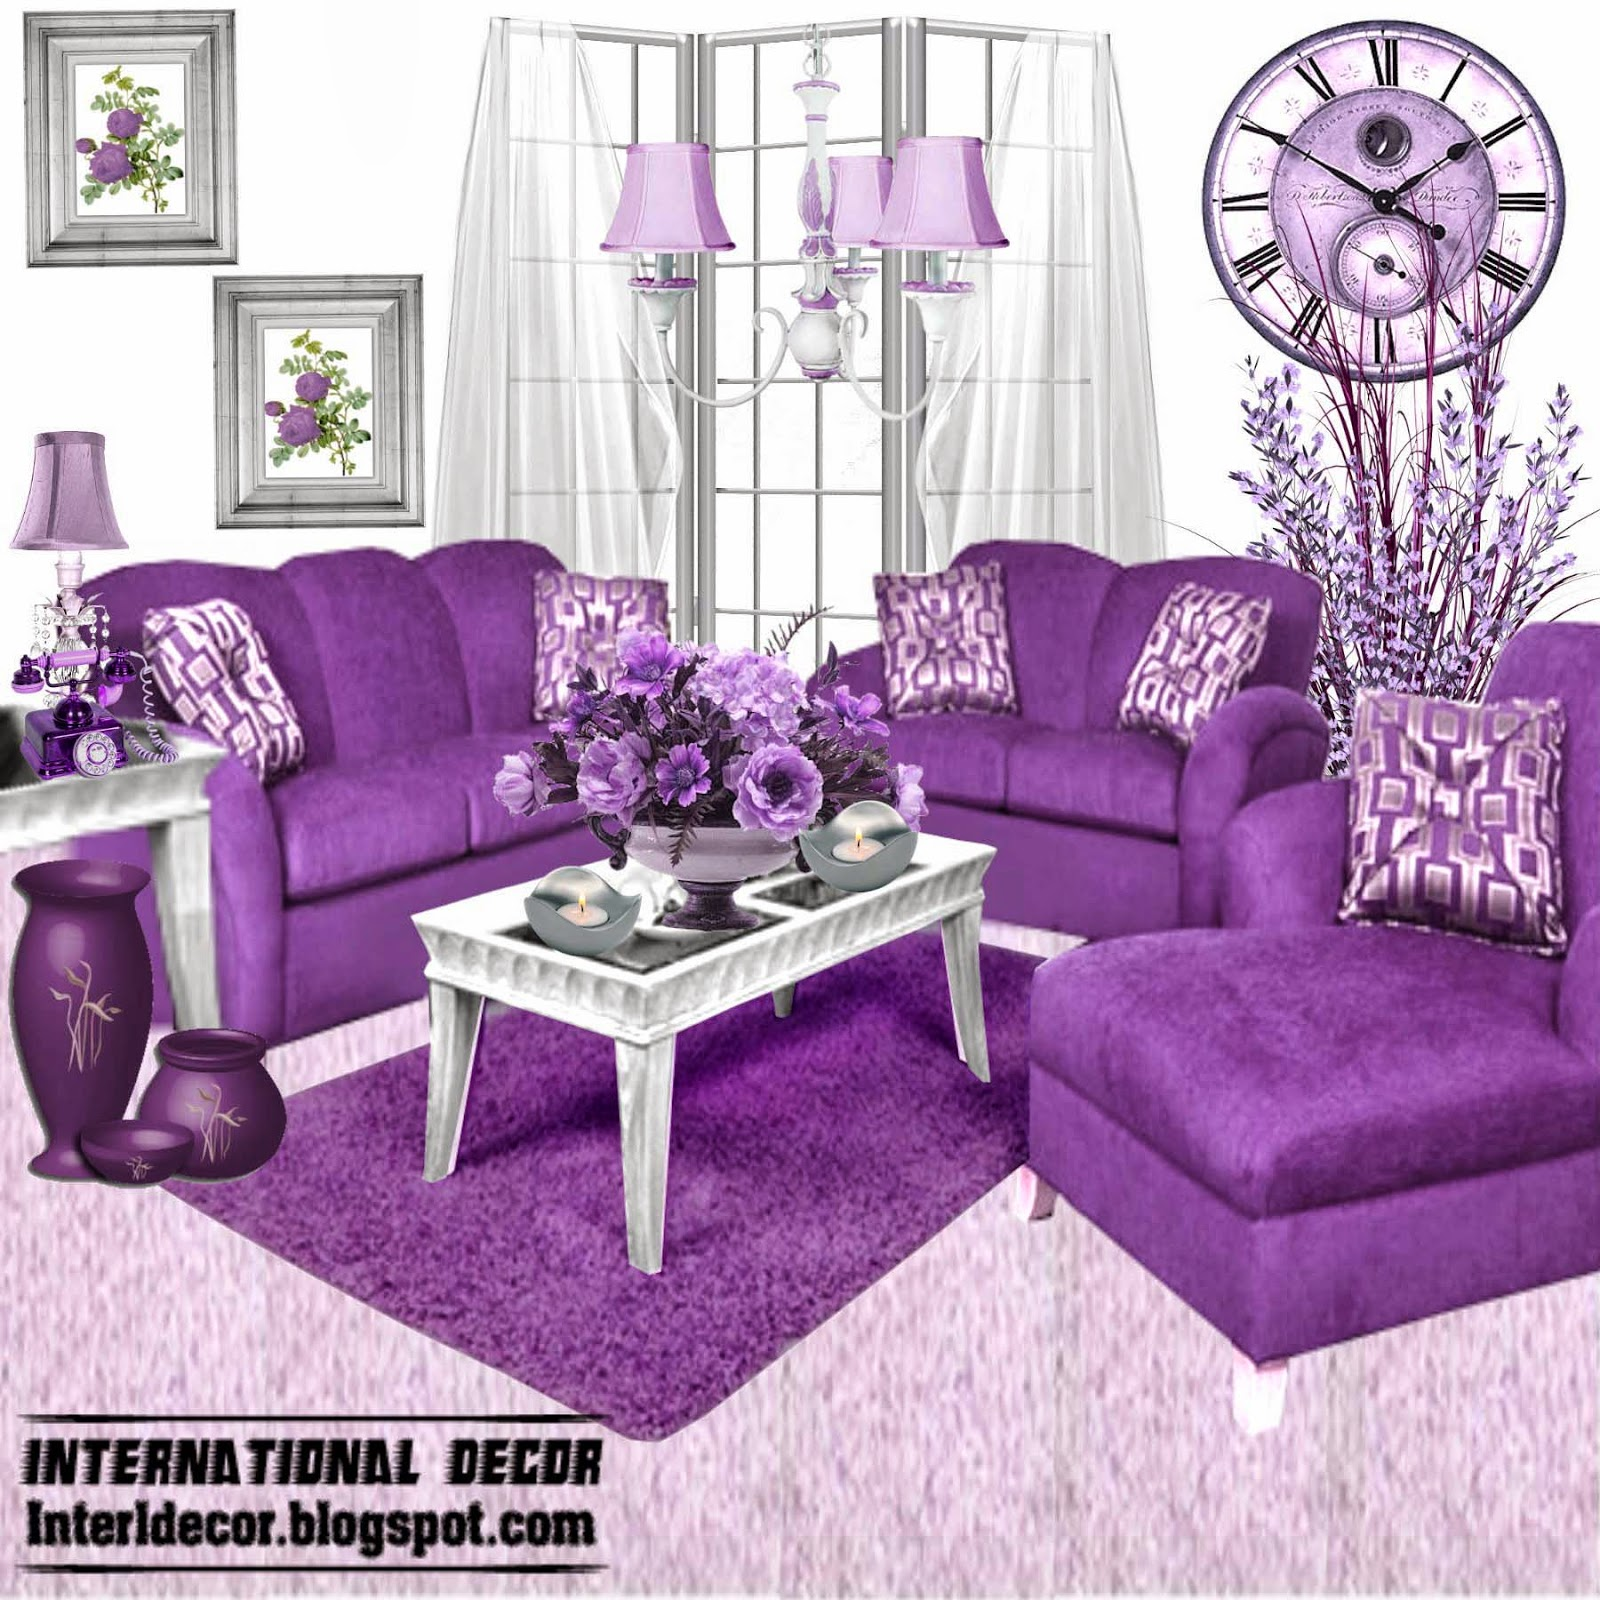 Purple furniture for the home pinterest purple for Family room chairs